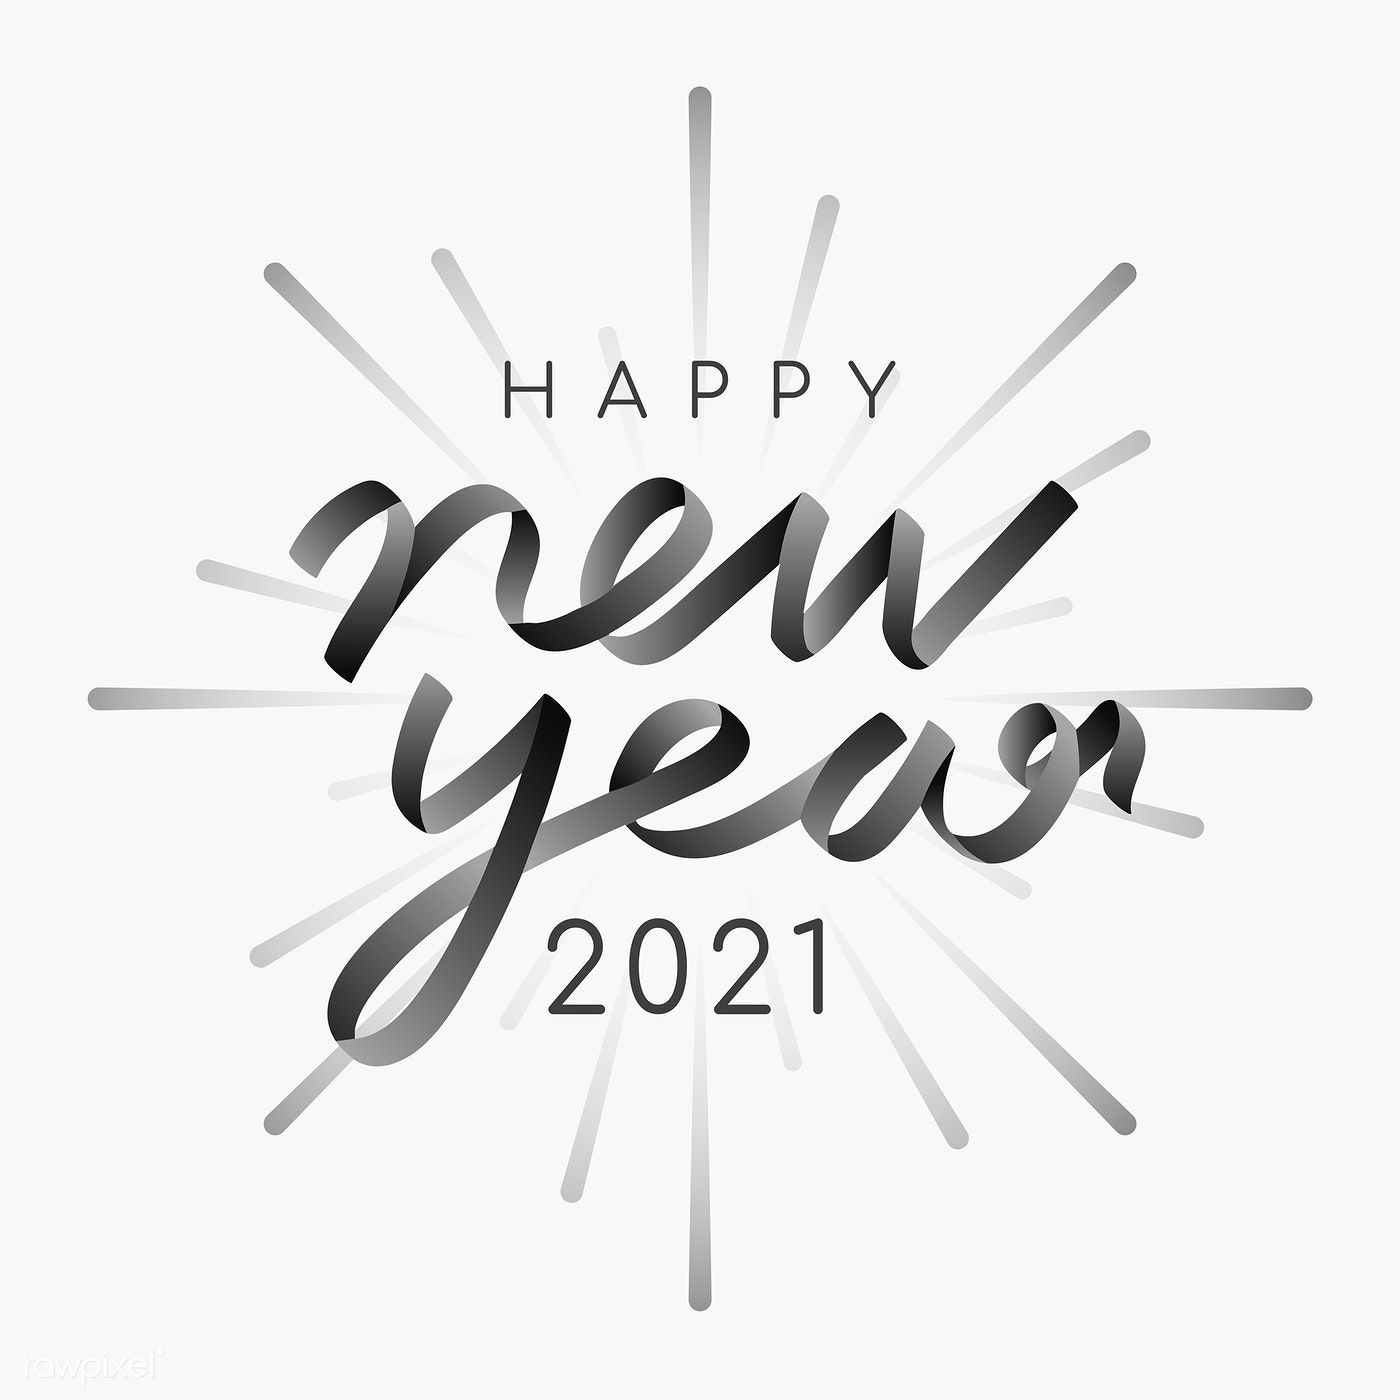 happy new year 2021 transparent png free image by rawpixel com ningzk v new year card design happy new year images happy new year happy new year 2021 transparent png